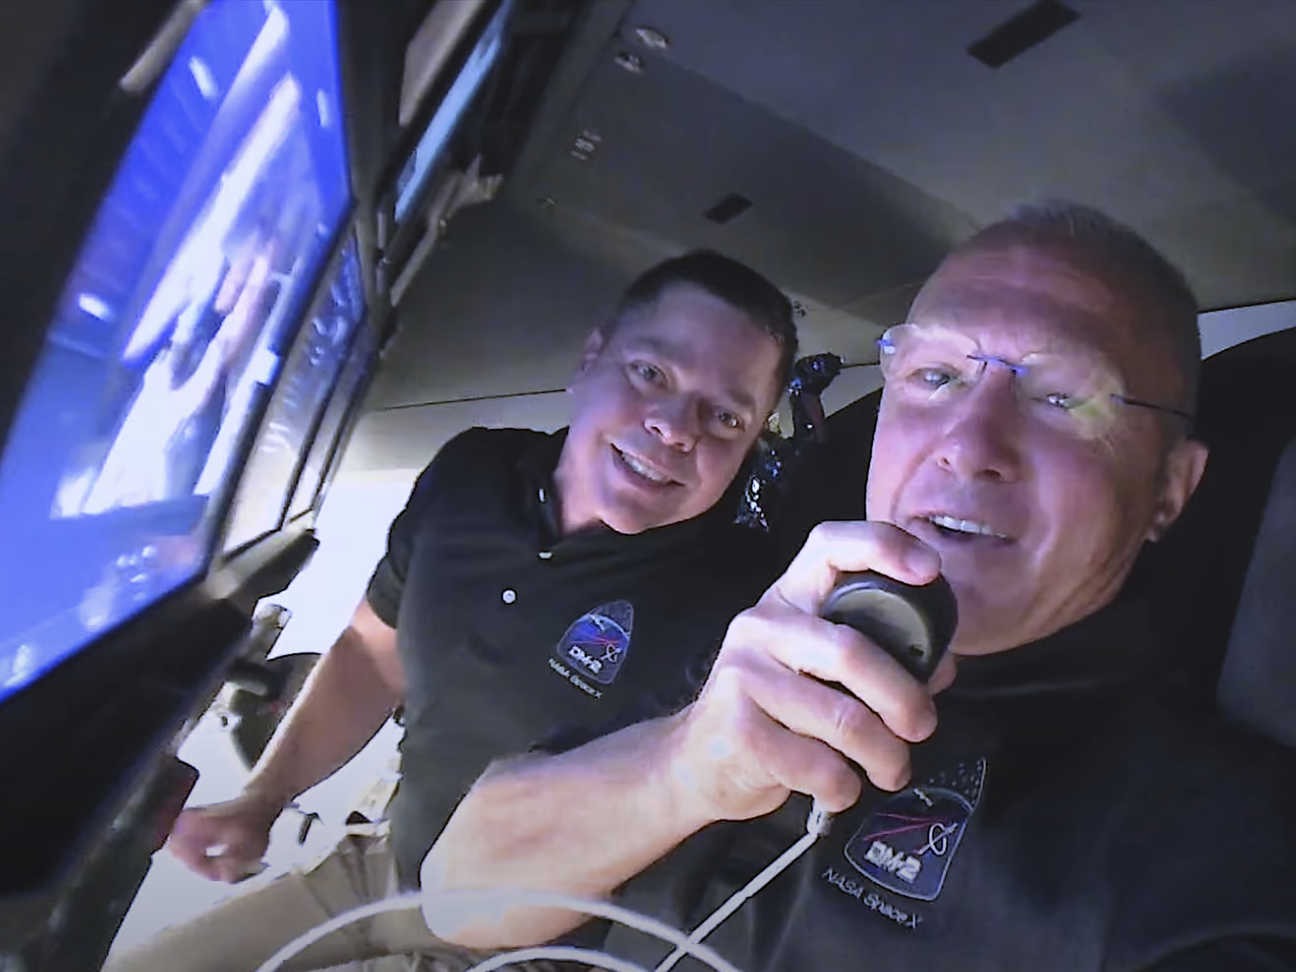 Bob Behnken (left) and Doug Hurley wish their families goodnight from inside the Crew Dragon capsule, May 30, 2020. (SpaceX)